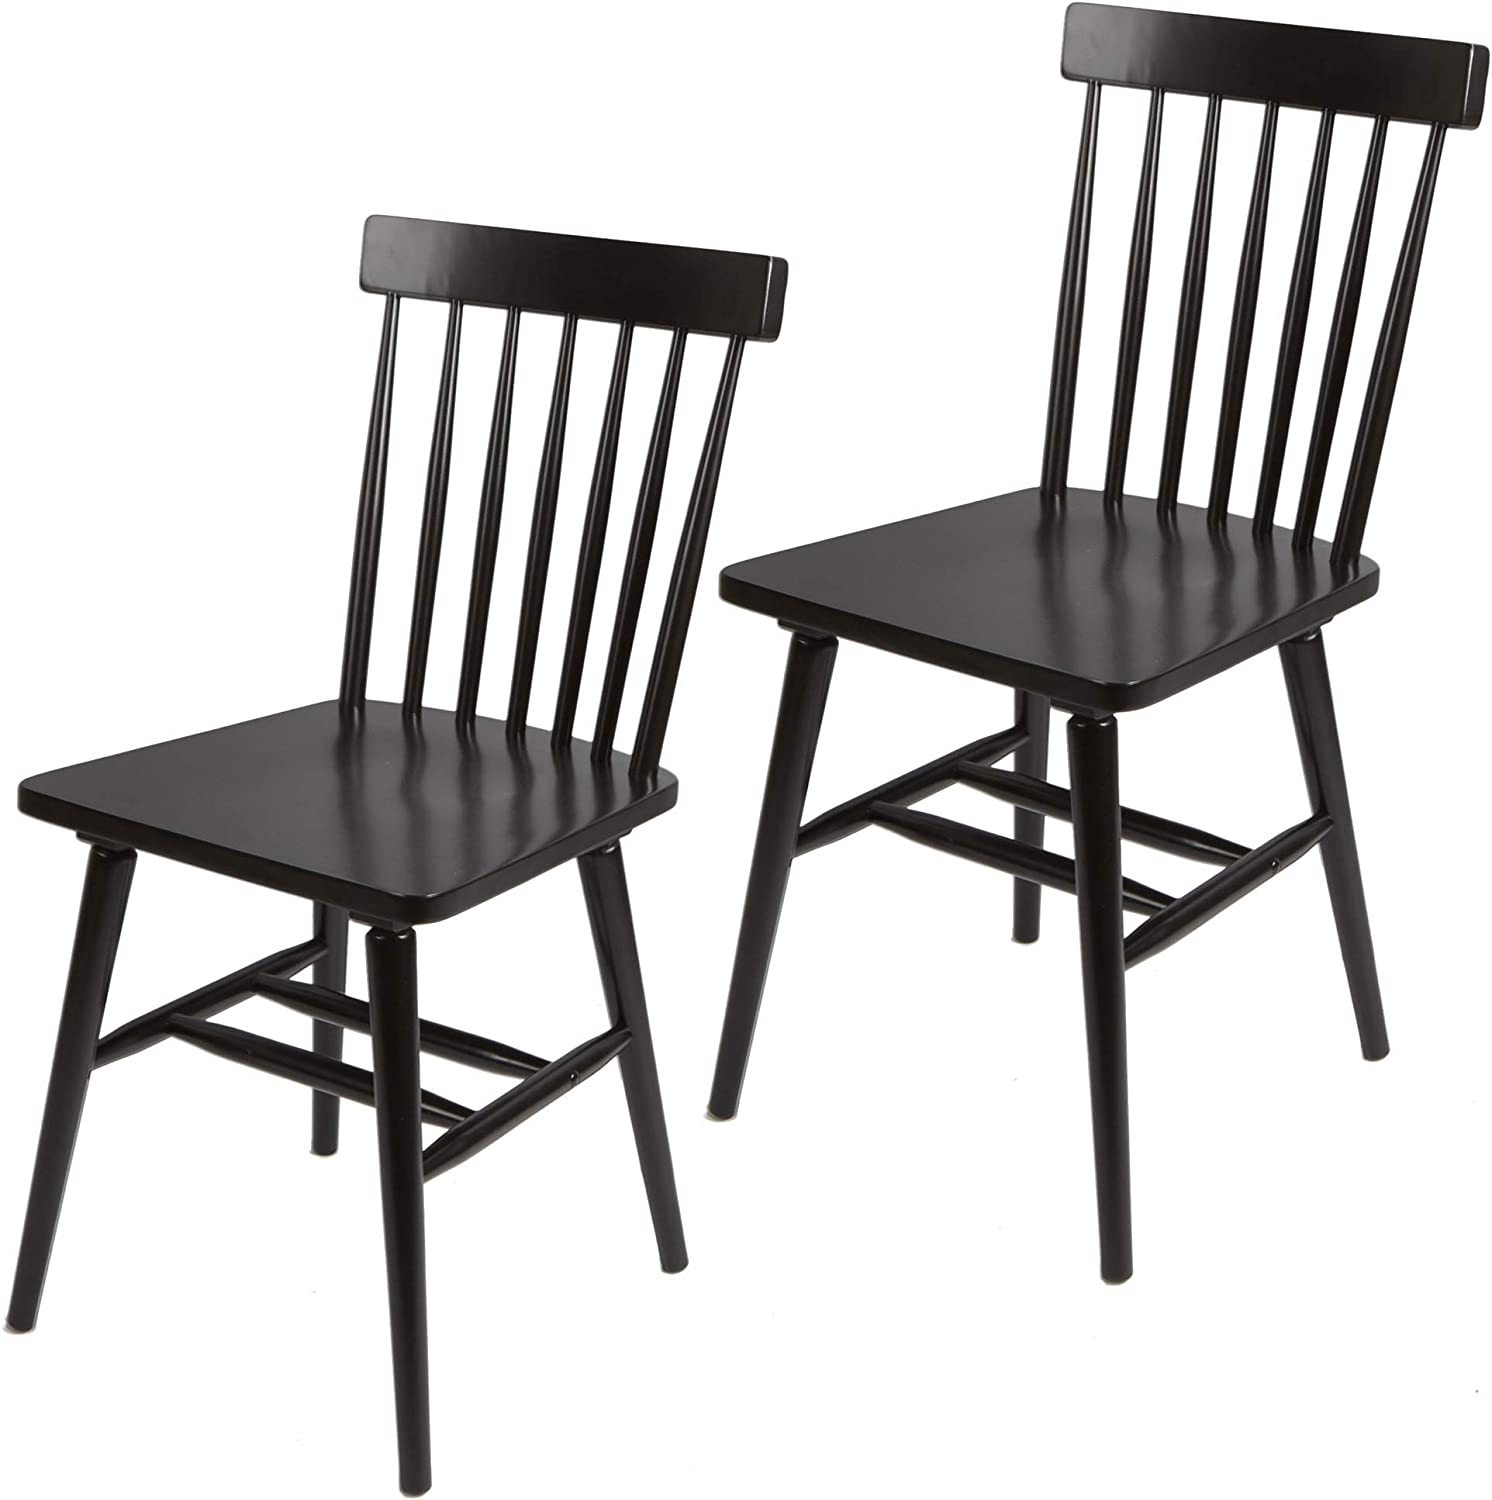 Gerald High Back Dining Free Shipping New Las Vegas Mall Chairs Black of Set 2